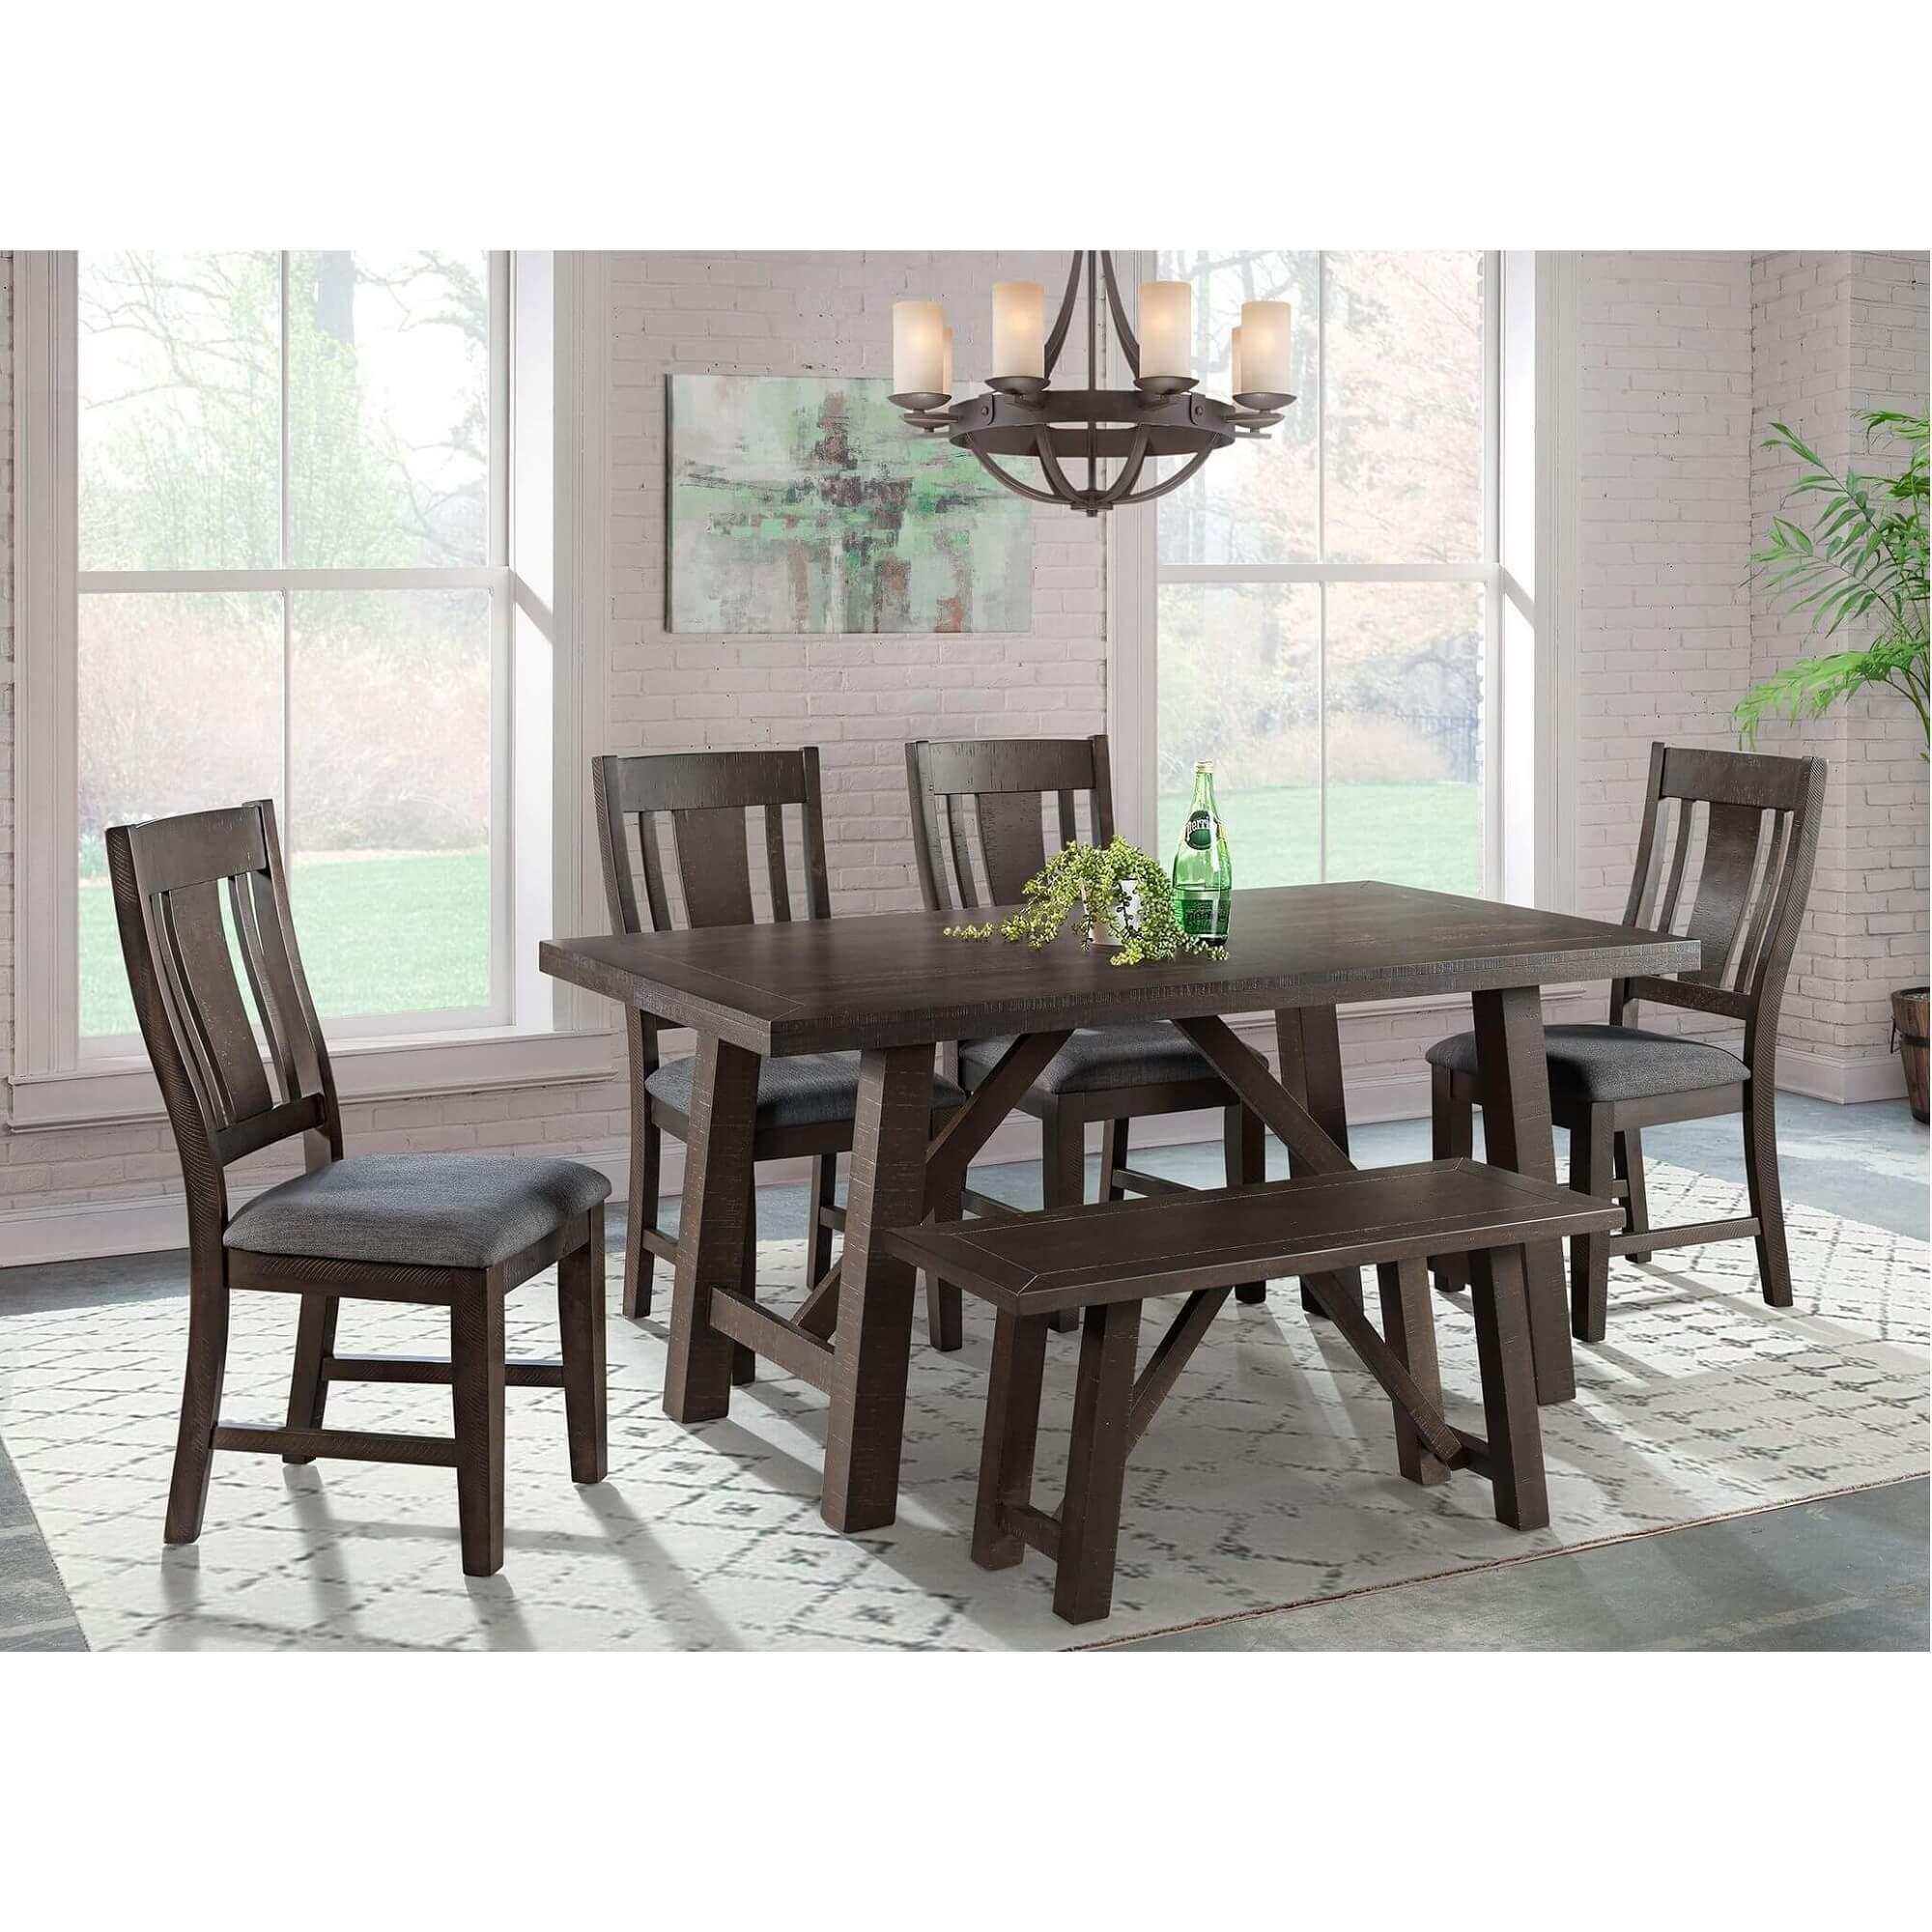 6 Piece Cash Dining Room Collection, Aarons Dining Room Sets